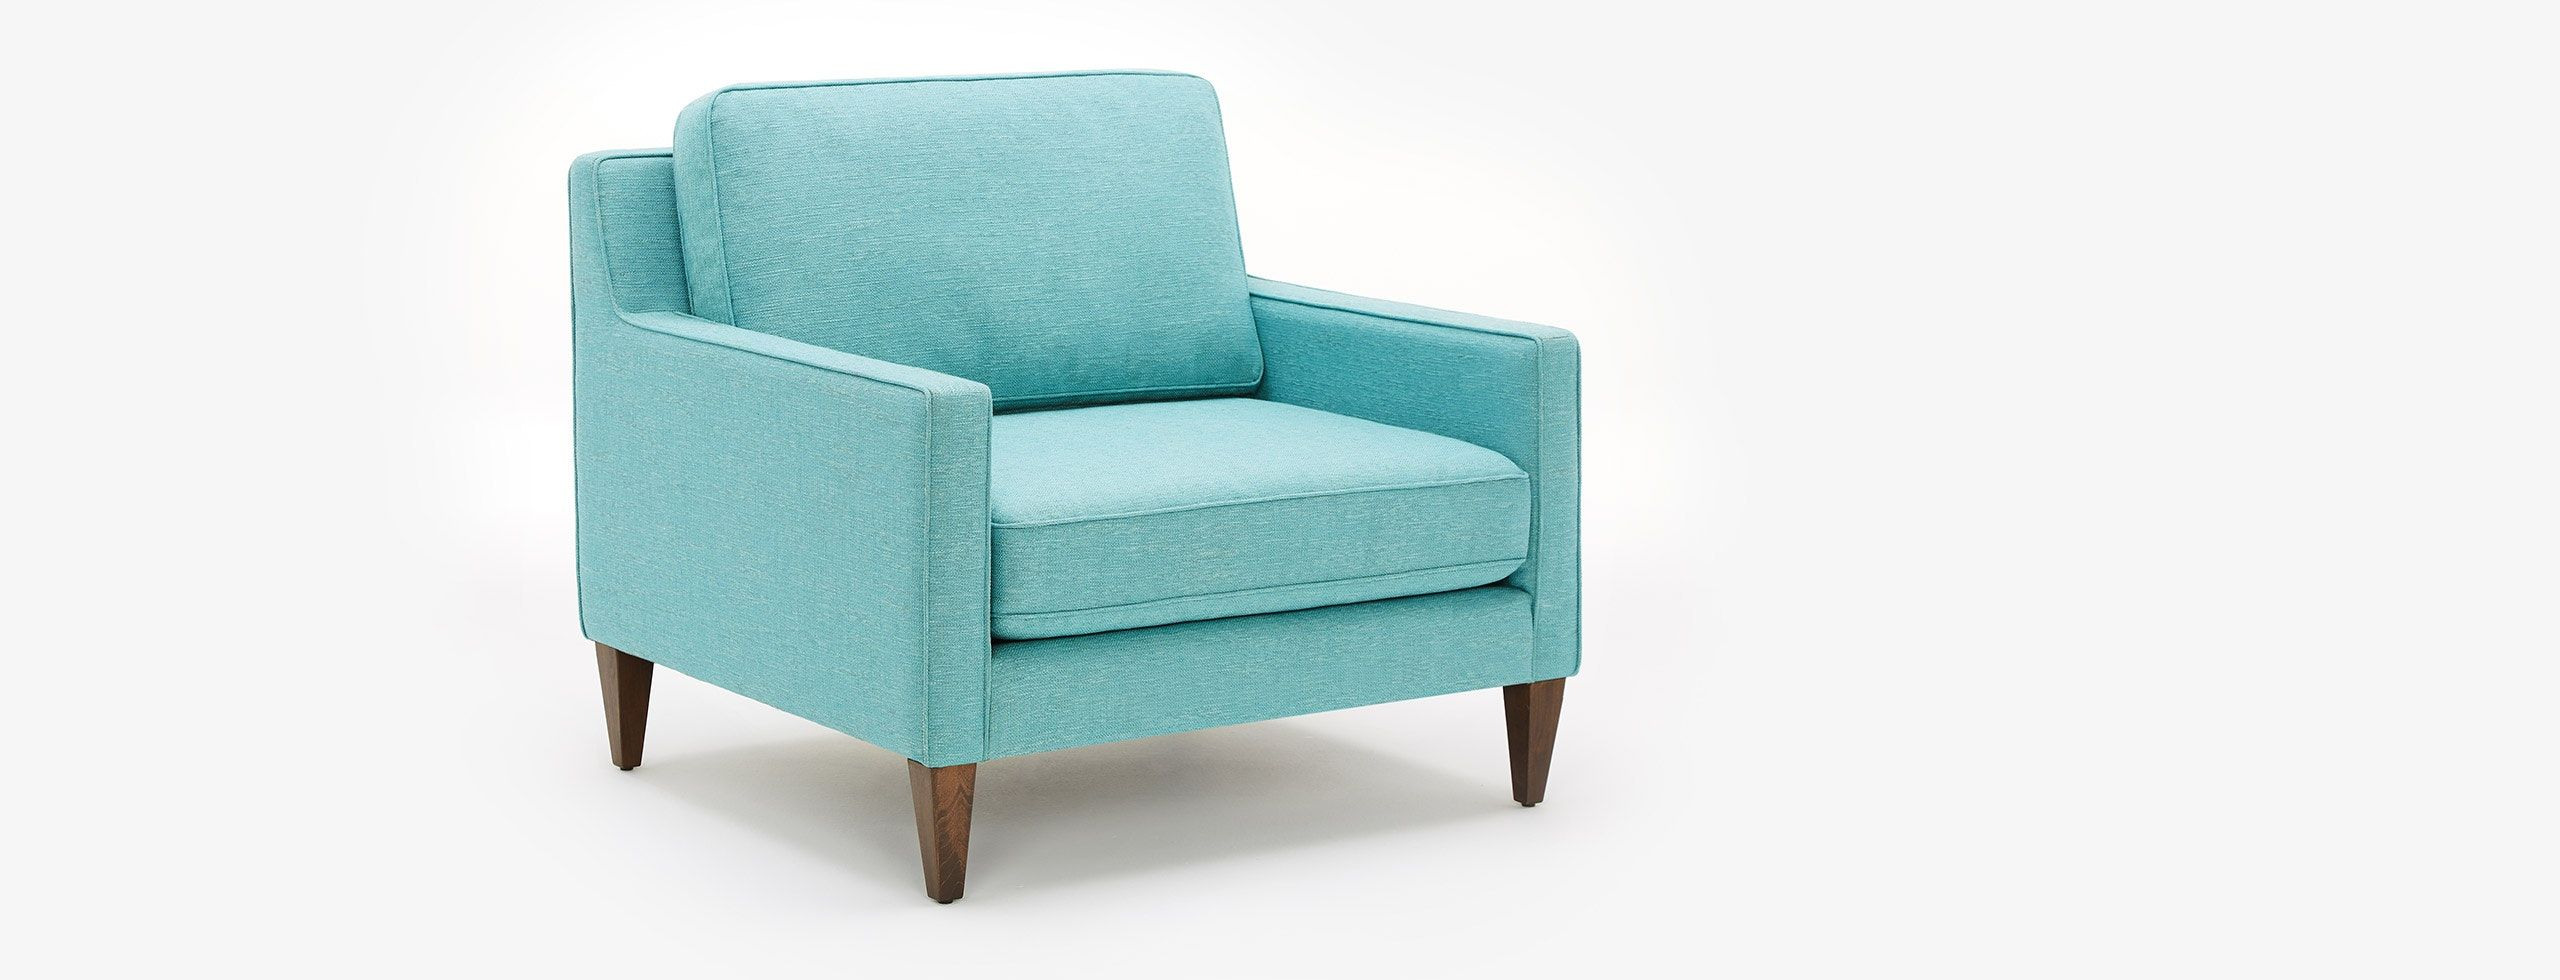 Levi chair in harlem life pinterest chair furniture and